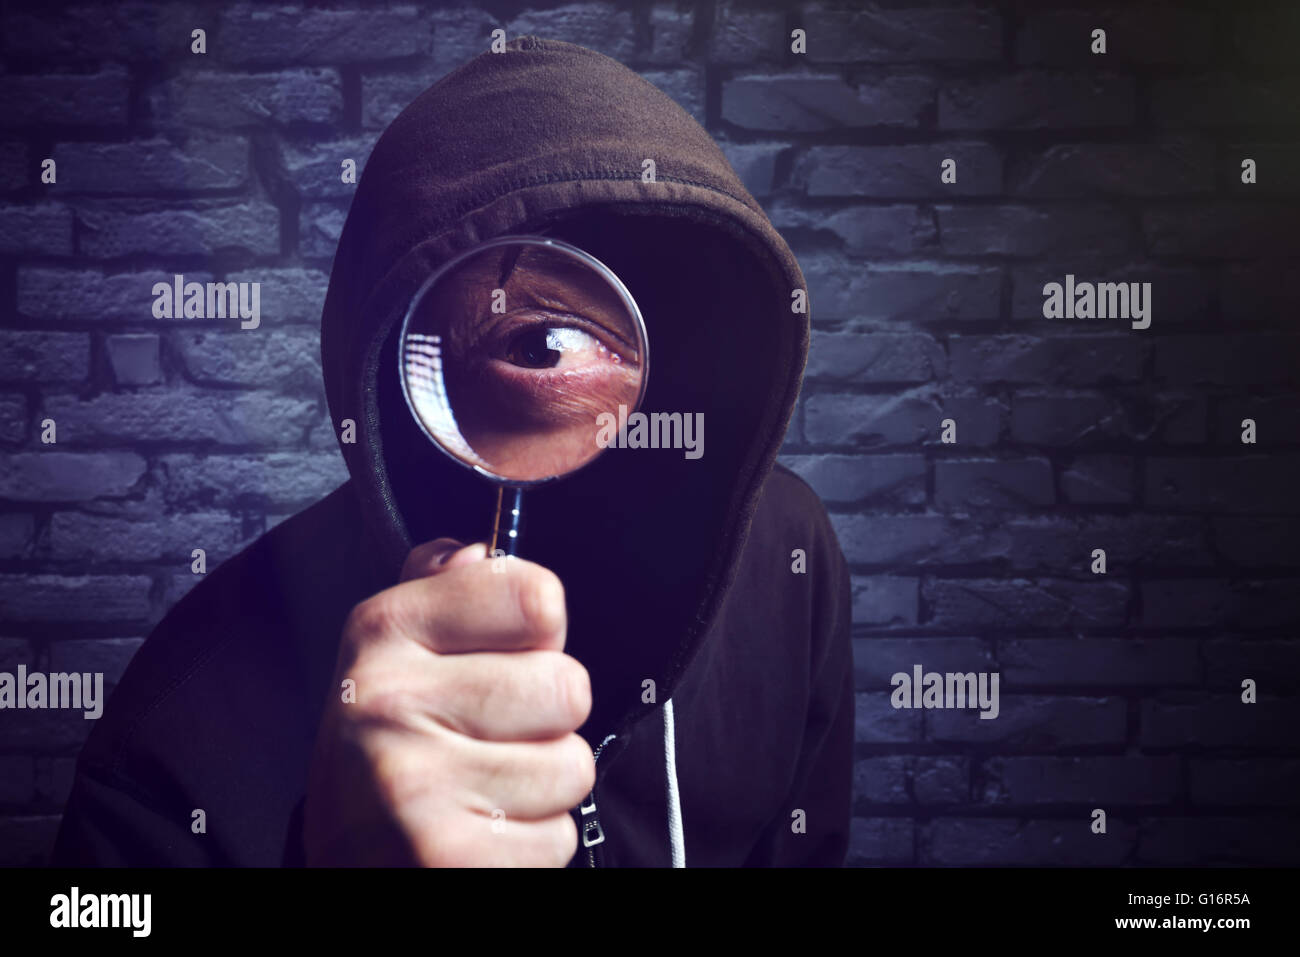 Hooded computer hacker with magnifying glass, internet hacker and online security concept. - Stock Image